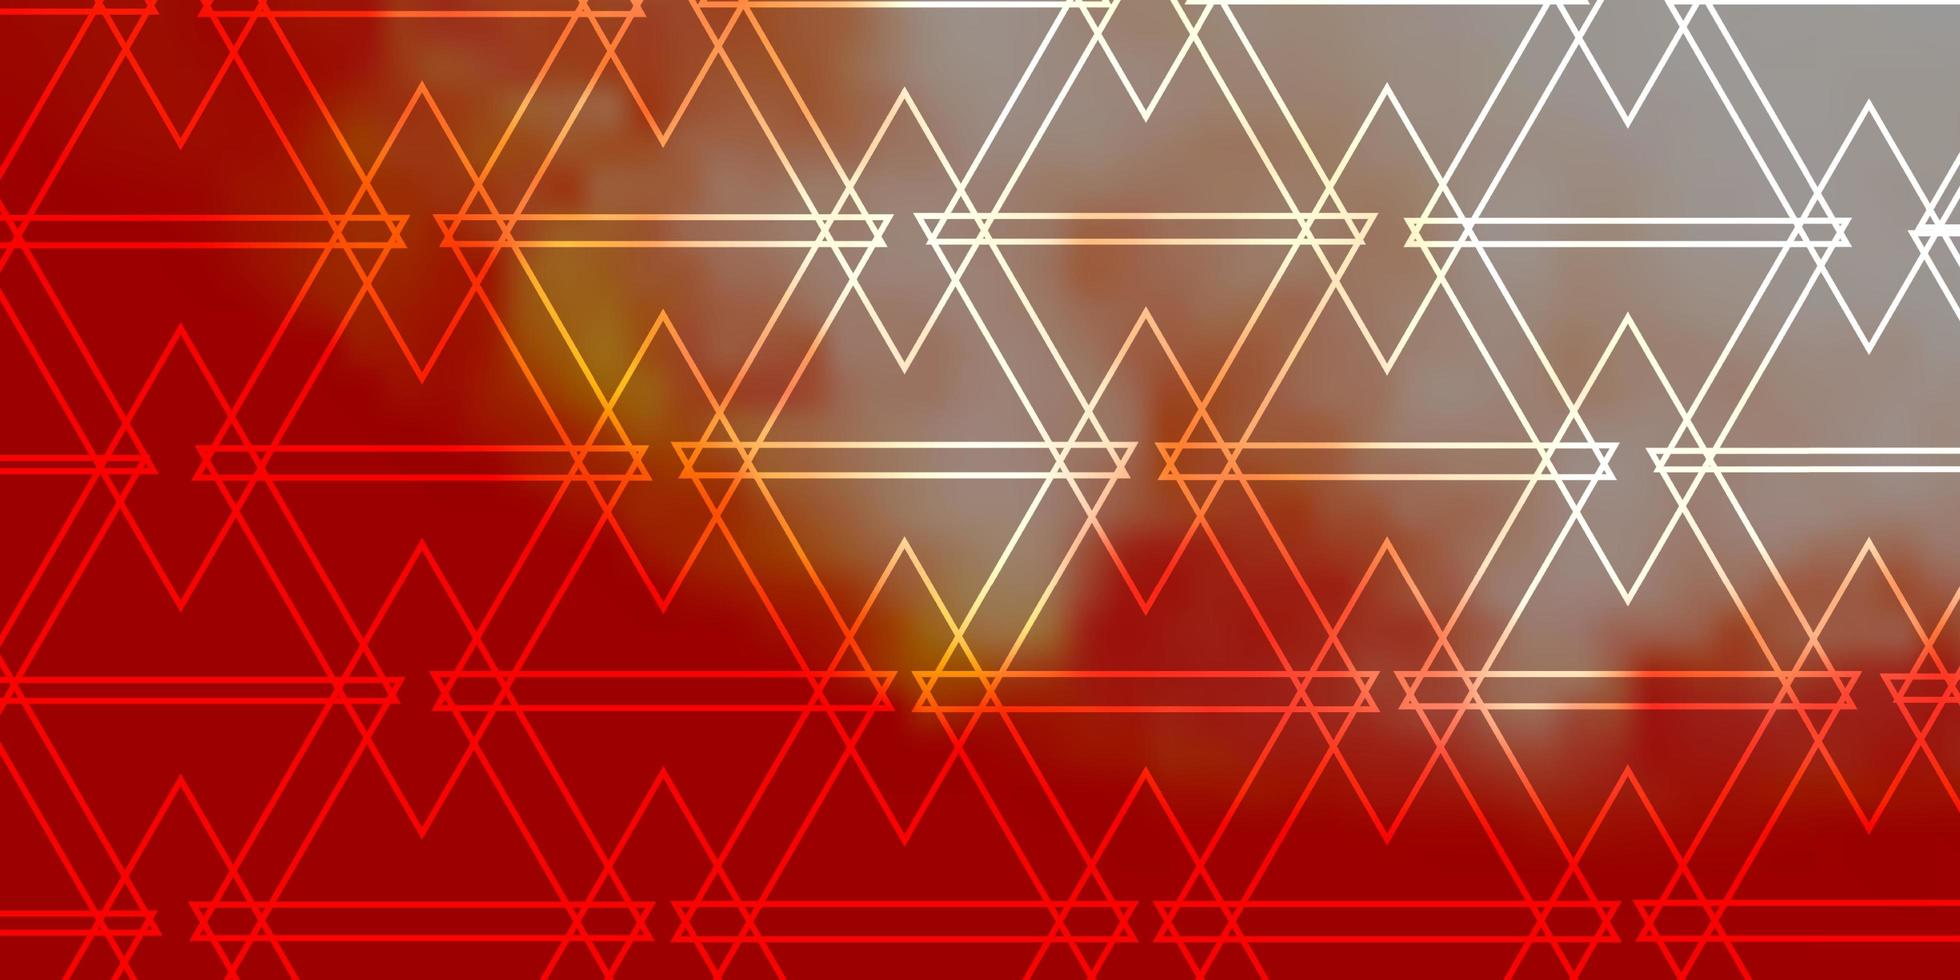 Light Red vector layout with lines, triangles.